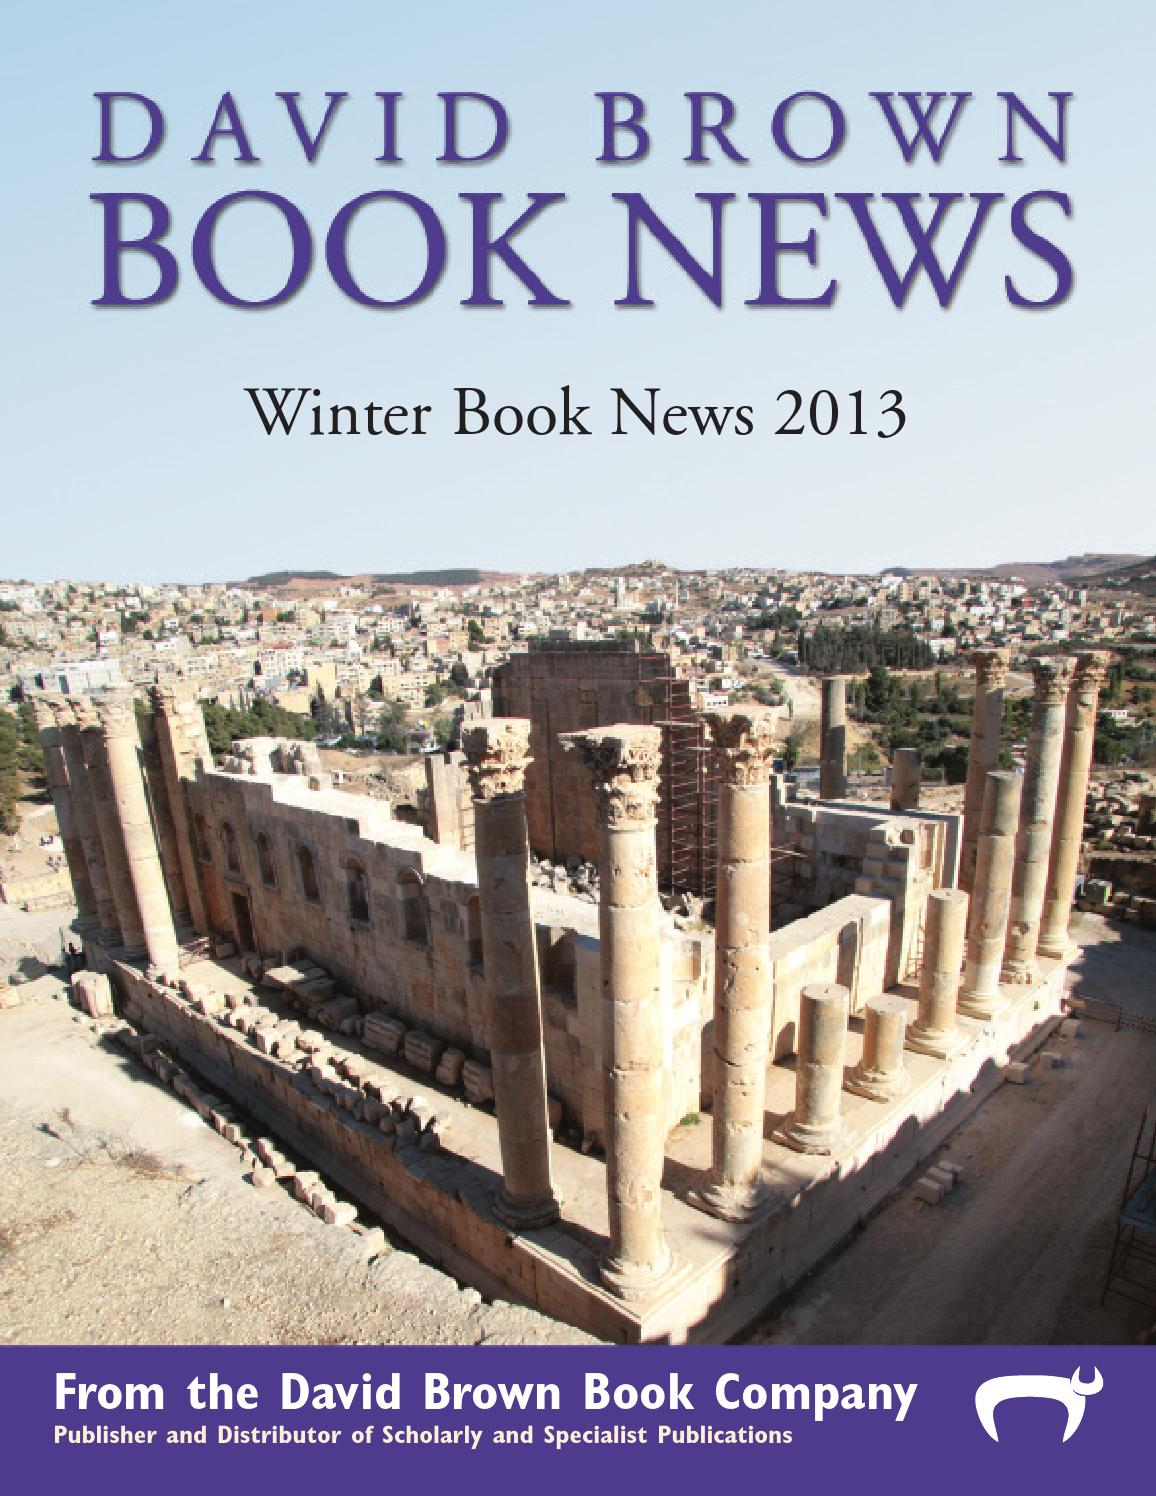 David Brown Book News Catalog Winter 2013 by Casemate Publishers Ltd - issuu